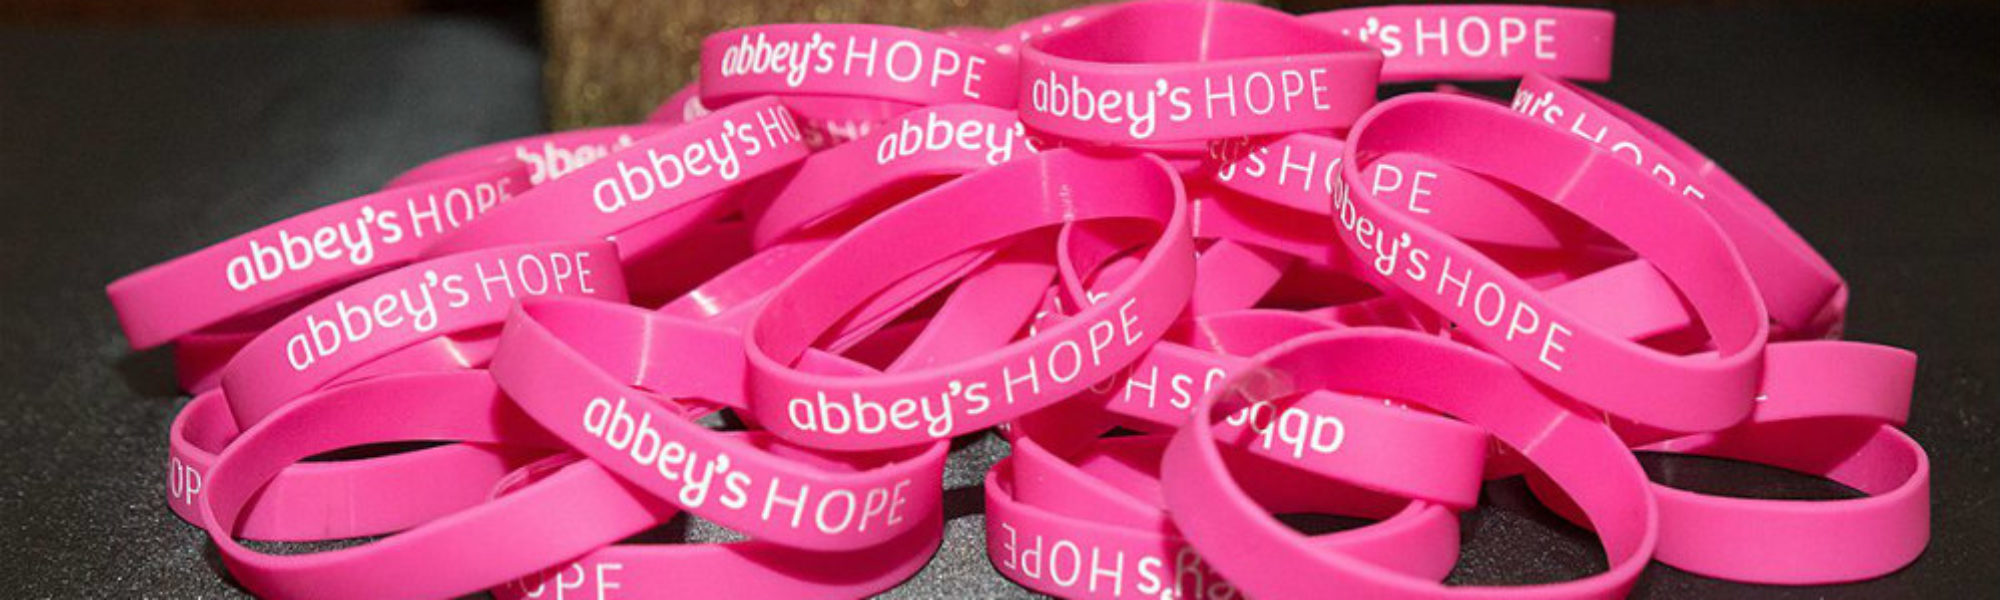 Abbey's Hope wrist bands by centerpiece slider